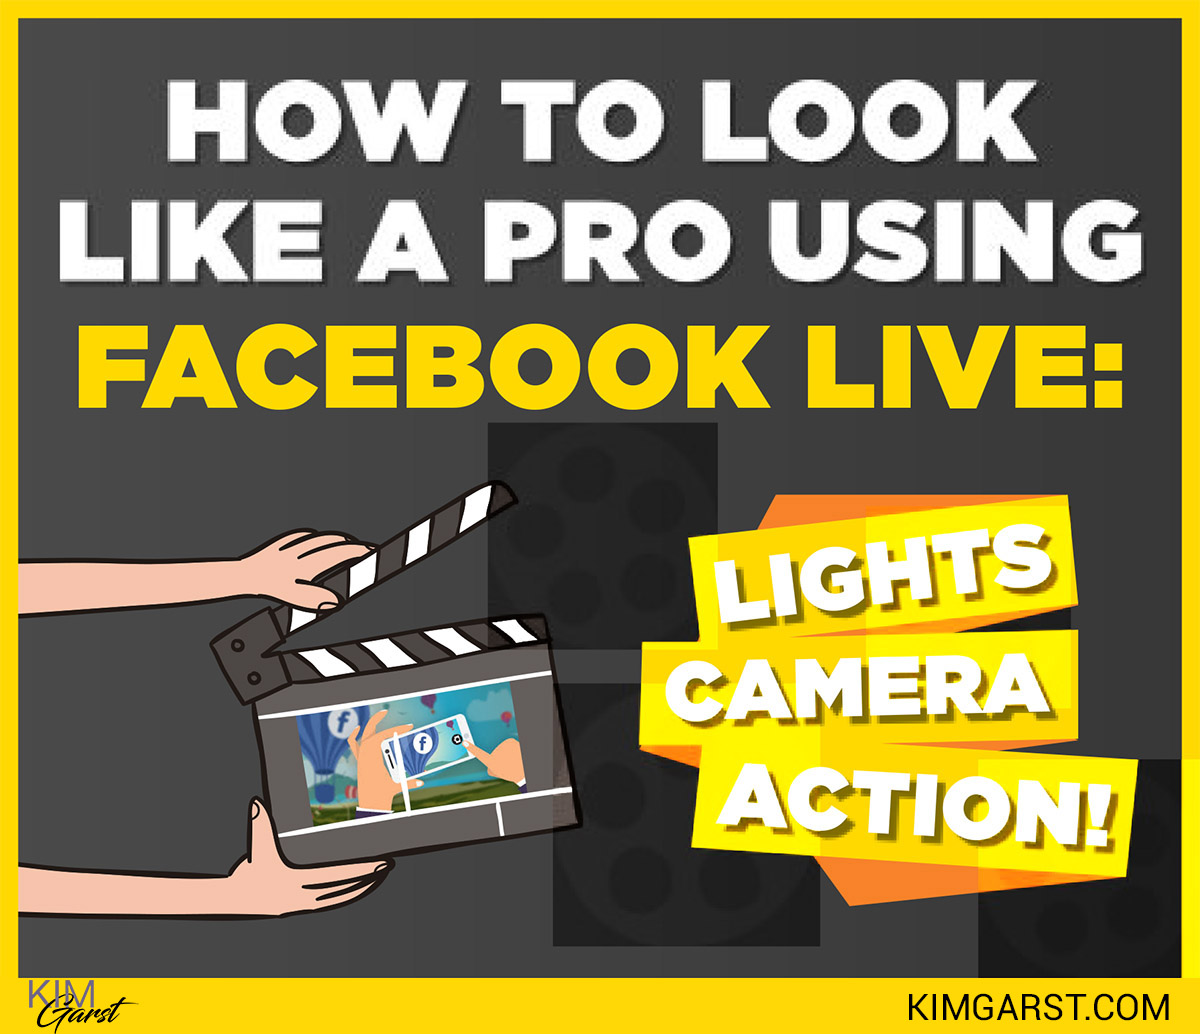 How To Look Like A Pro Using Facebook Live Lights Camera Action Soft Start For Flash Kim Garst Marketing Strategies That Work